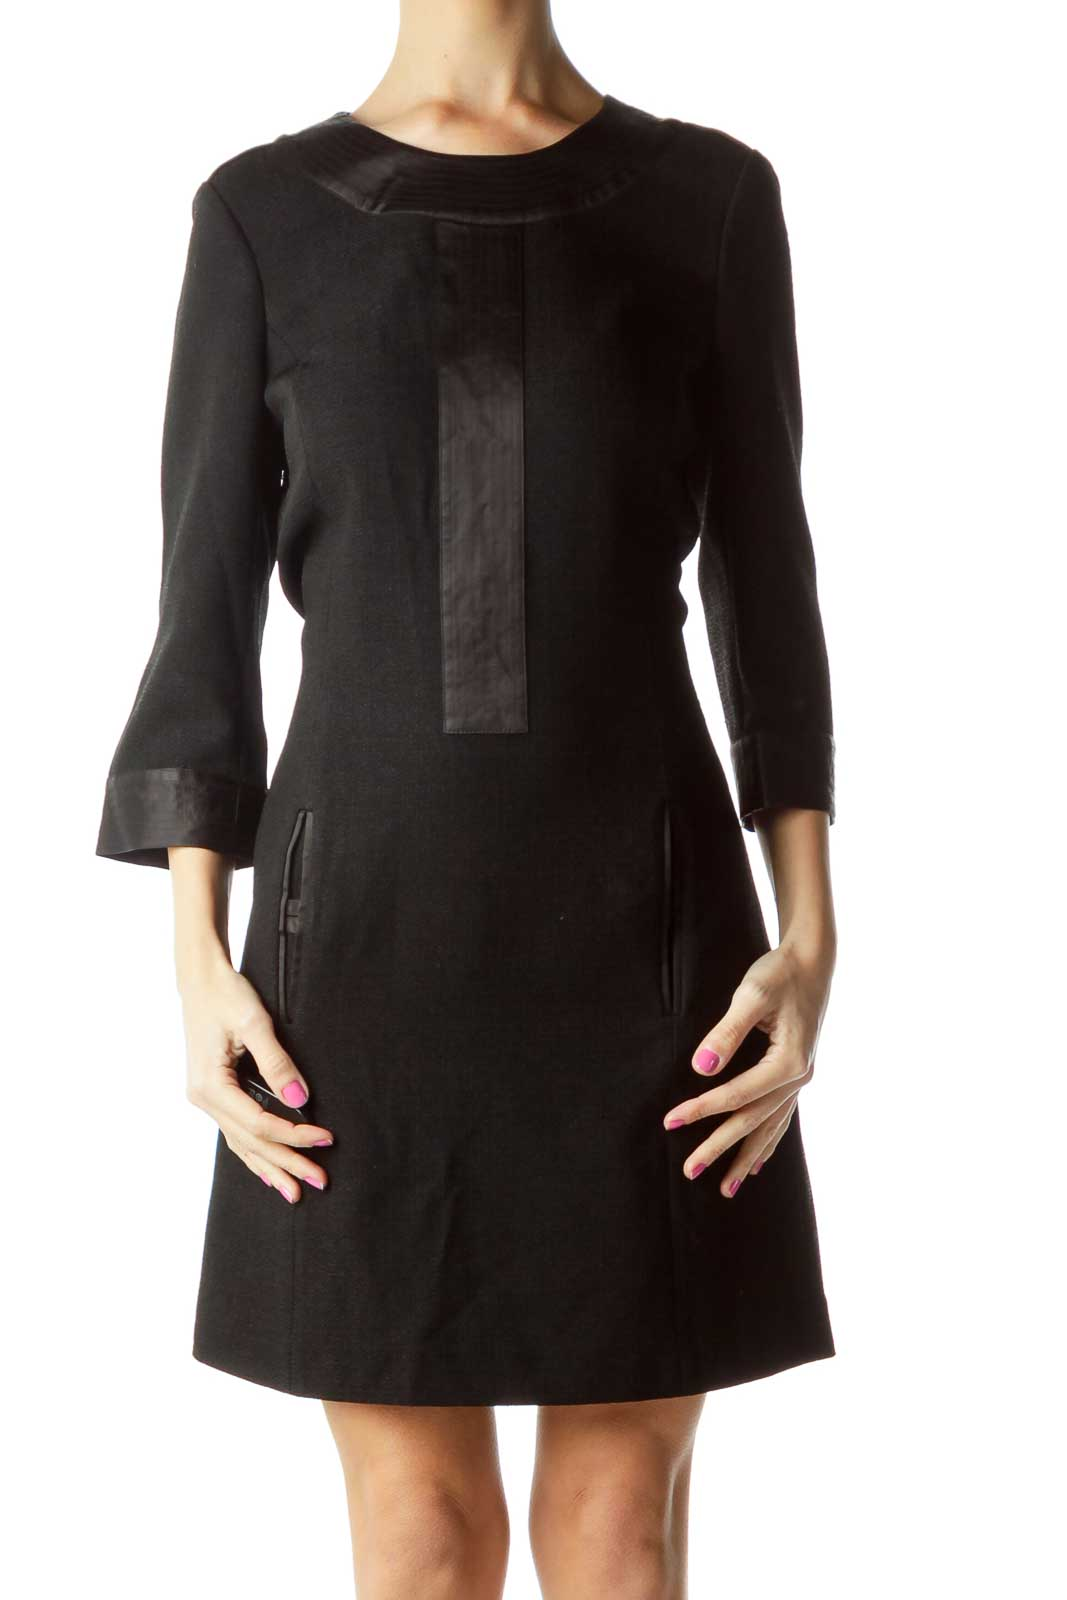 Black 3/4 Sleeve Shift Work Dress Front